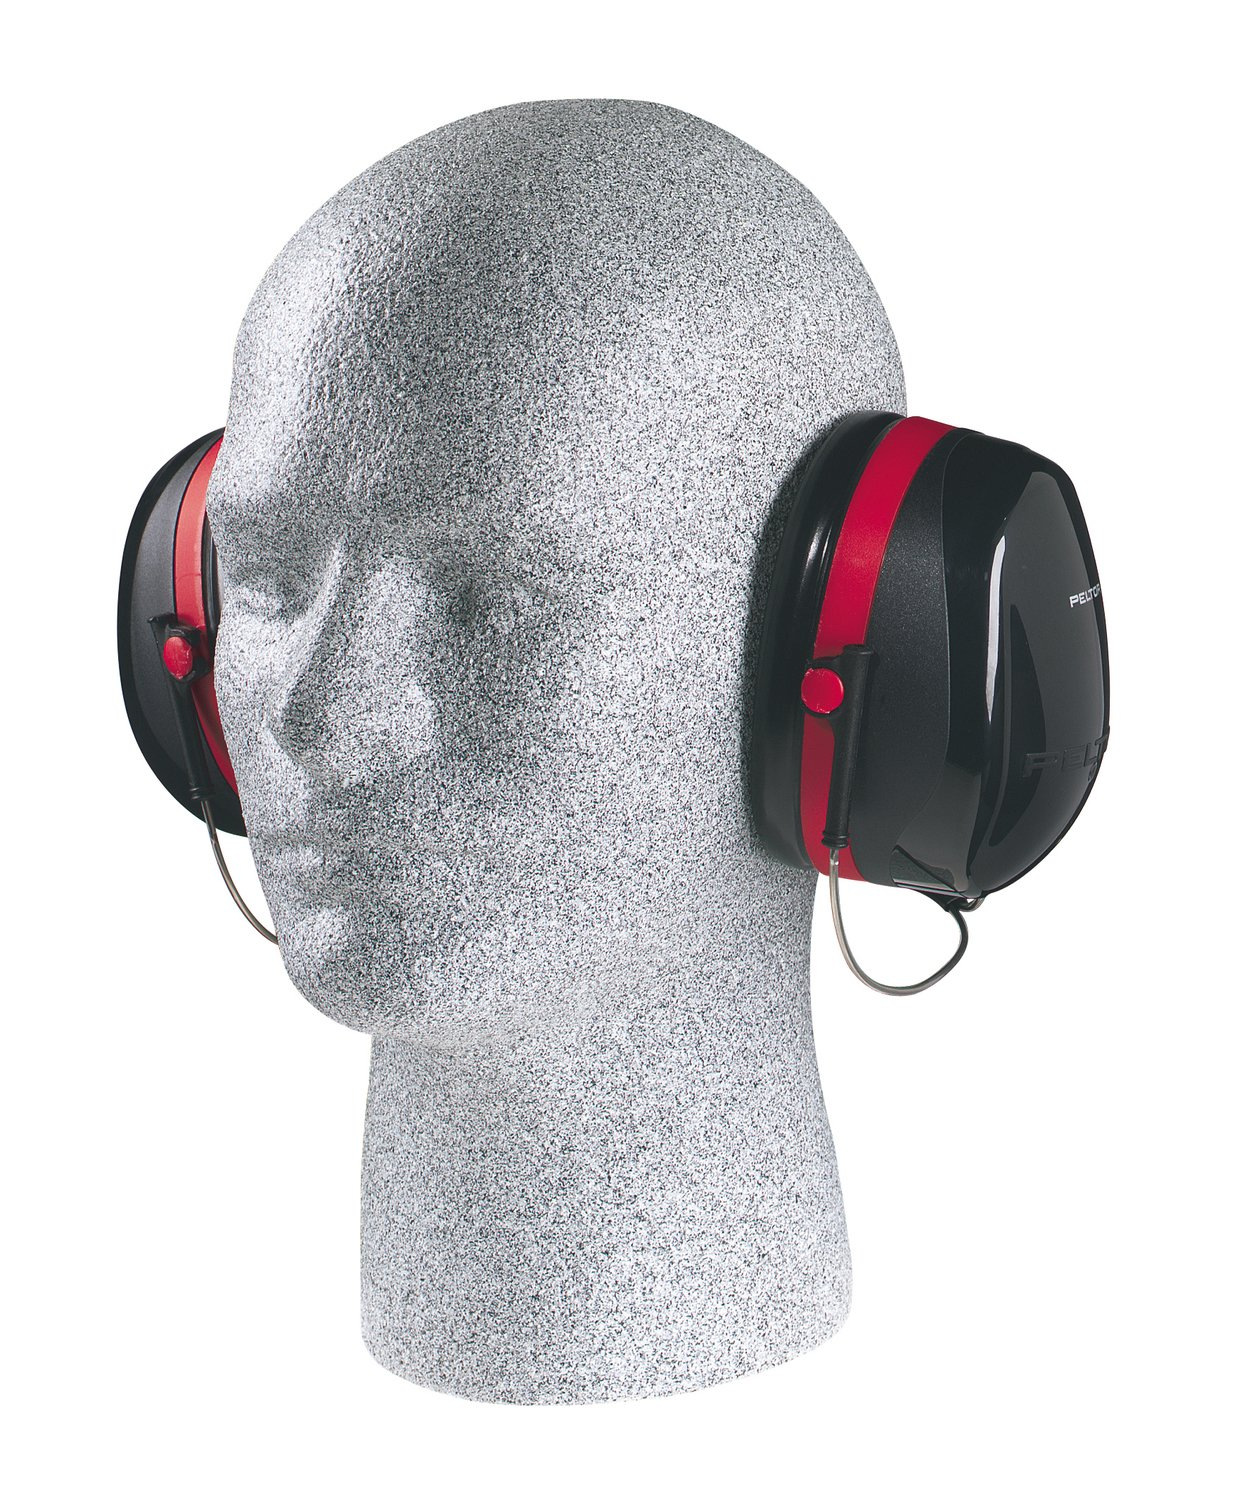 3M Peltor Optime 105 Behind-the-Head Earmuff with Neckband, Ear Protectors, Hearing Protection, NRR 29 dB